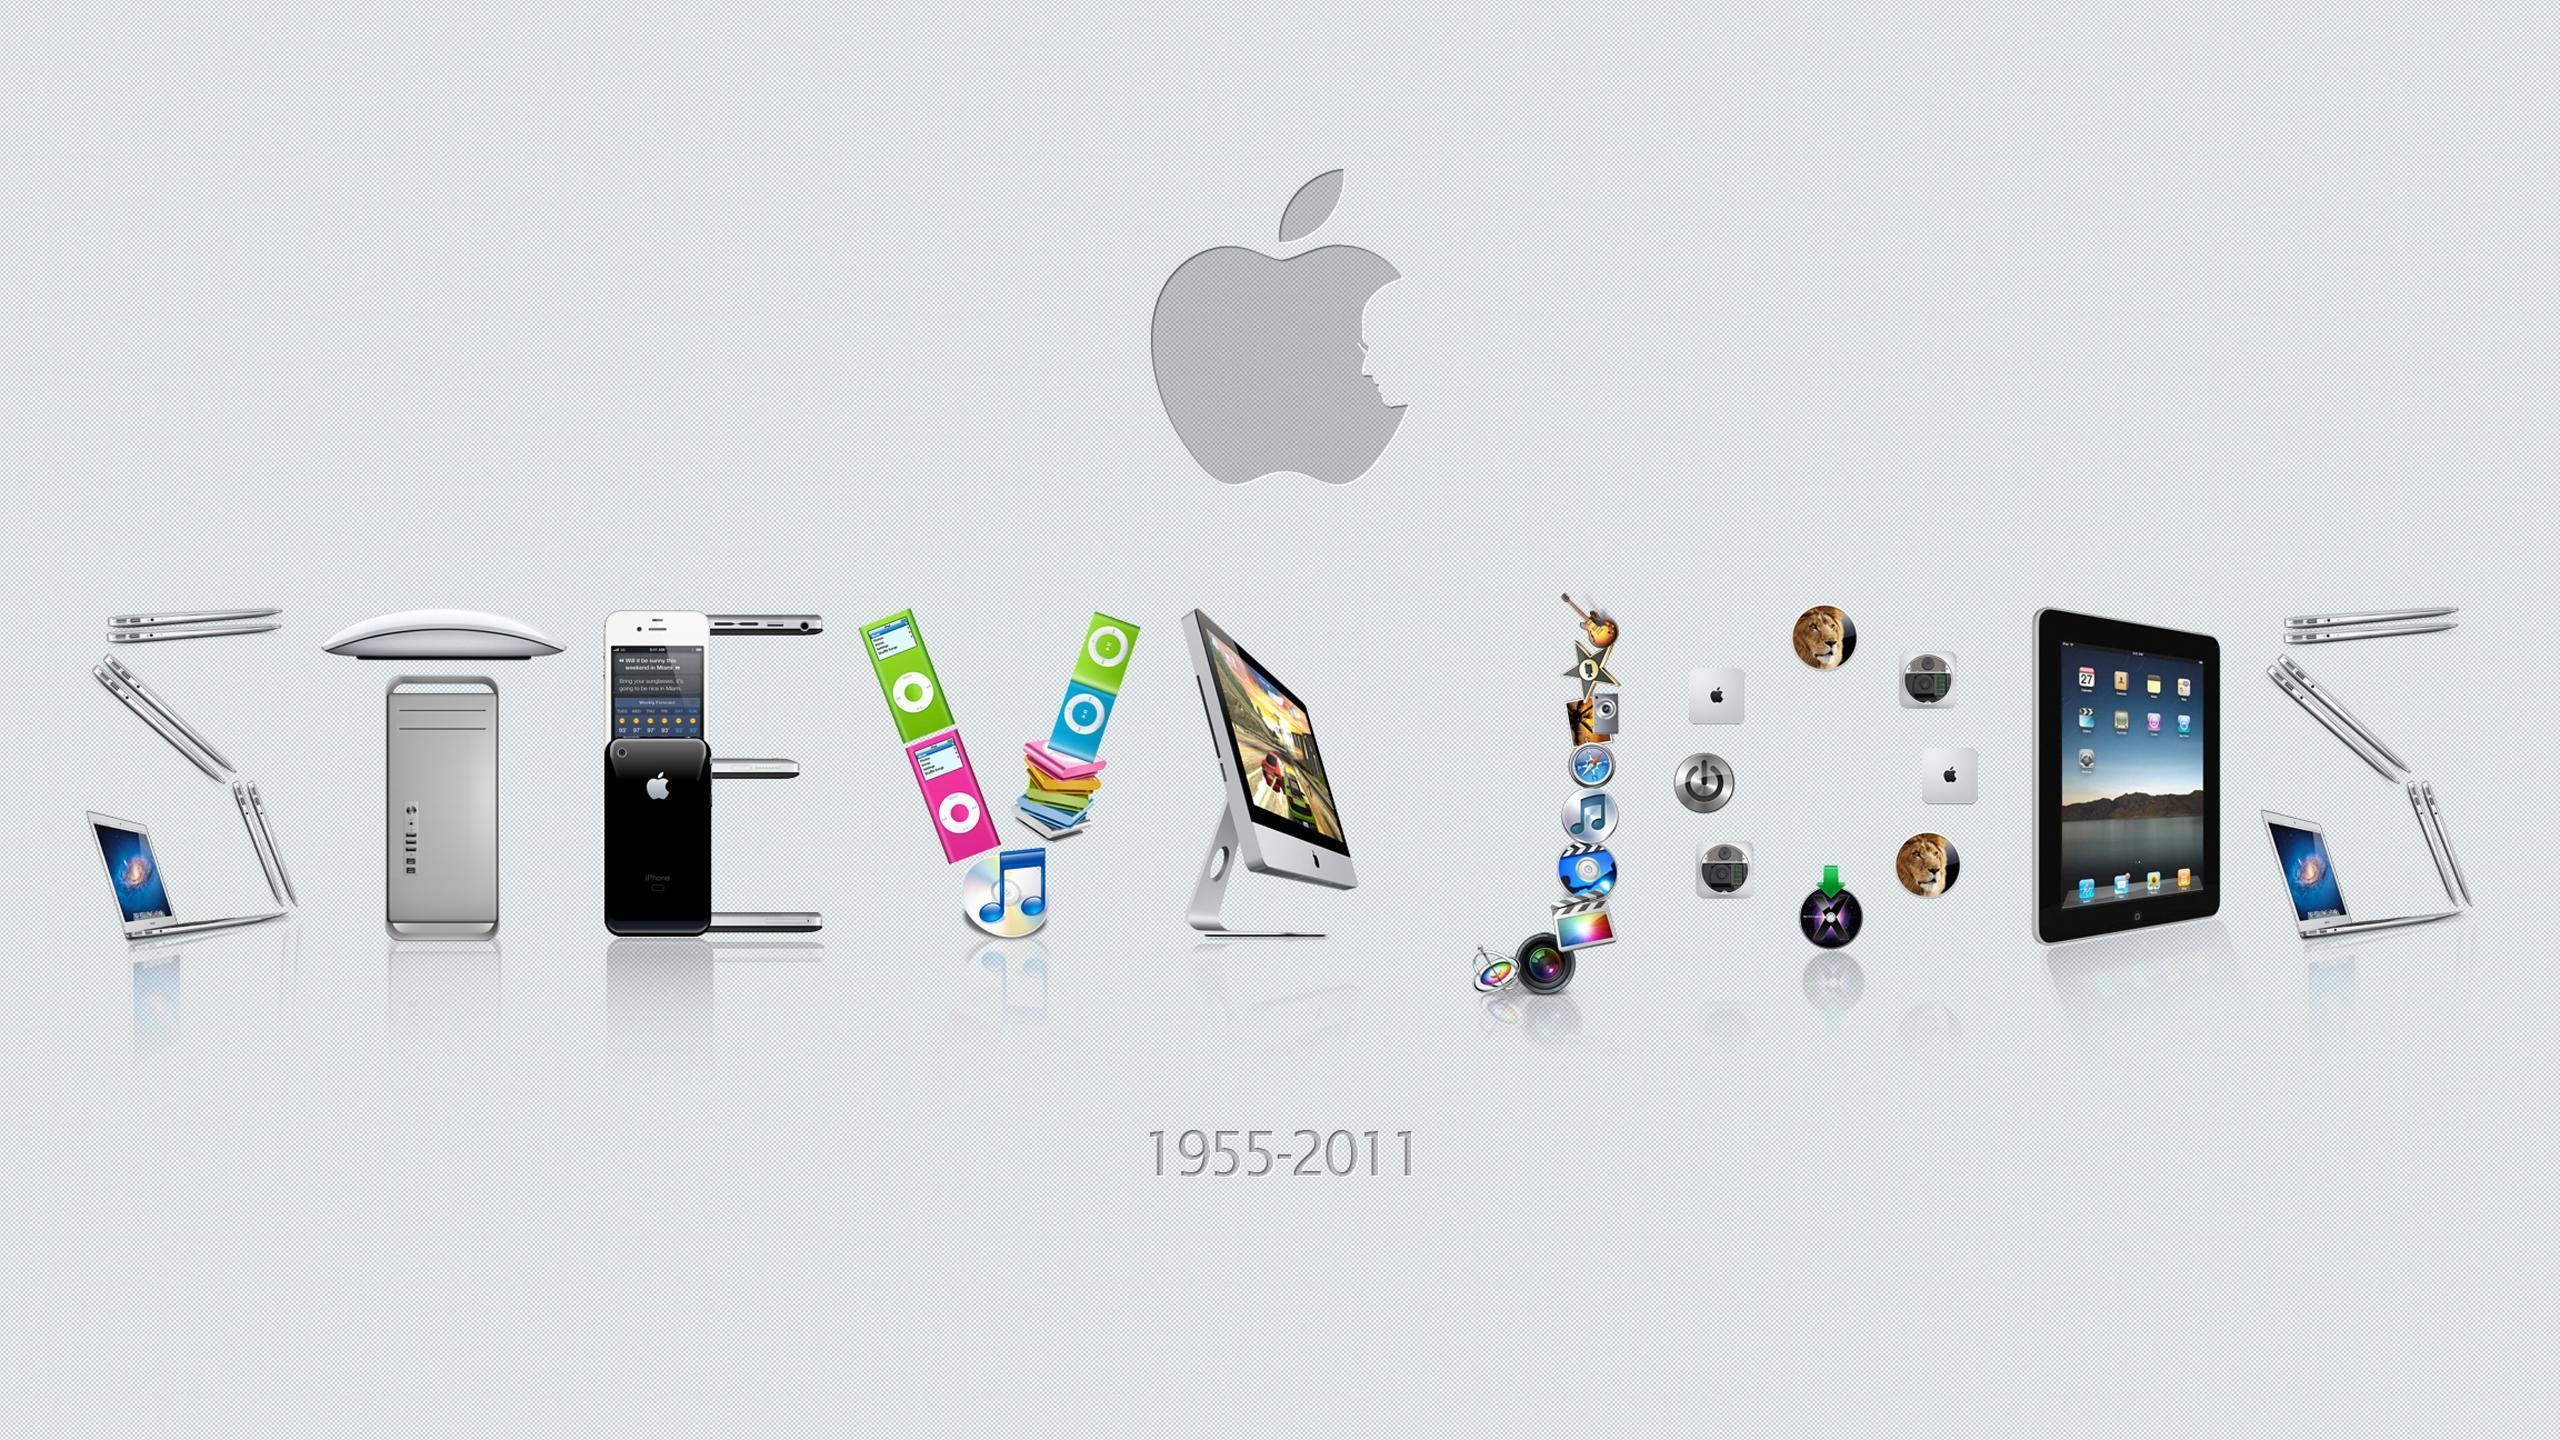 Steve Jobs Apple wallpaper - 2560x1440